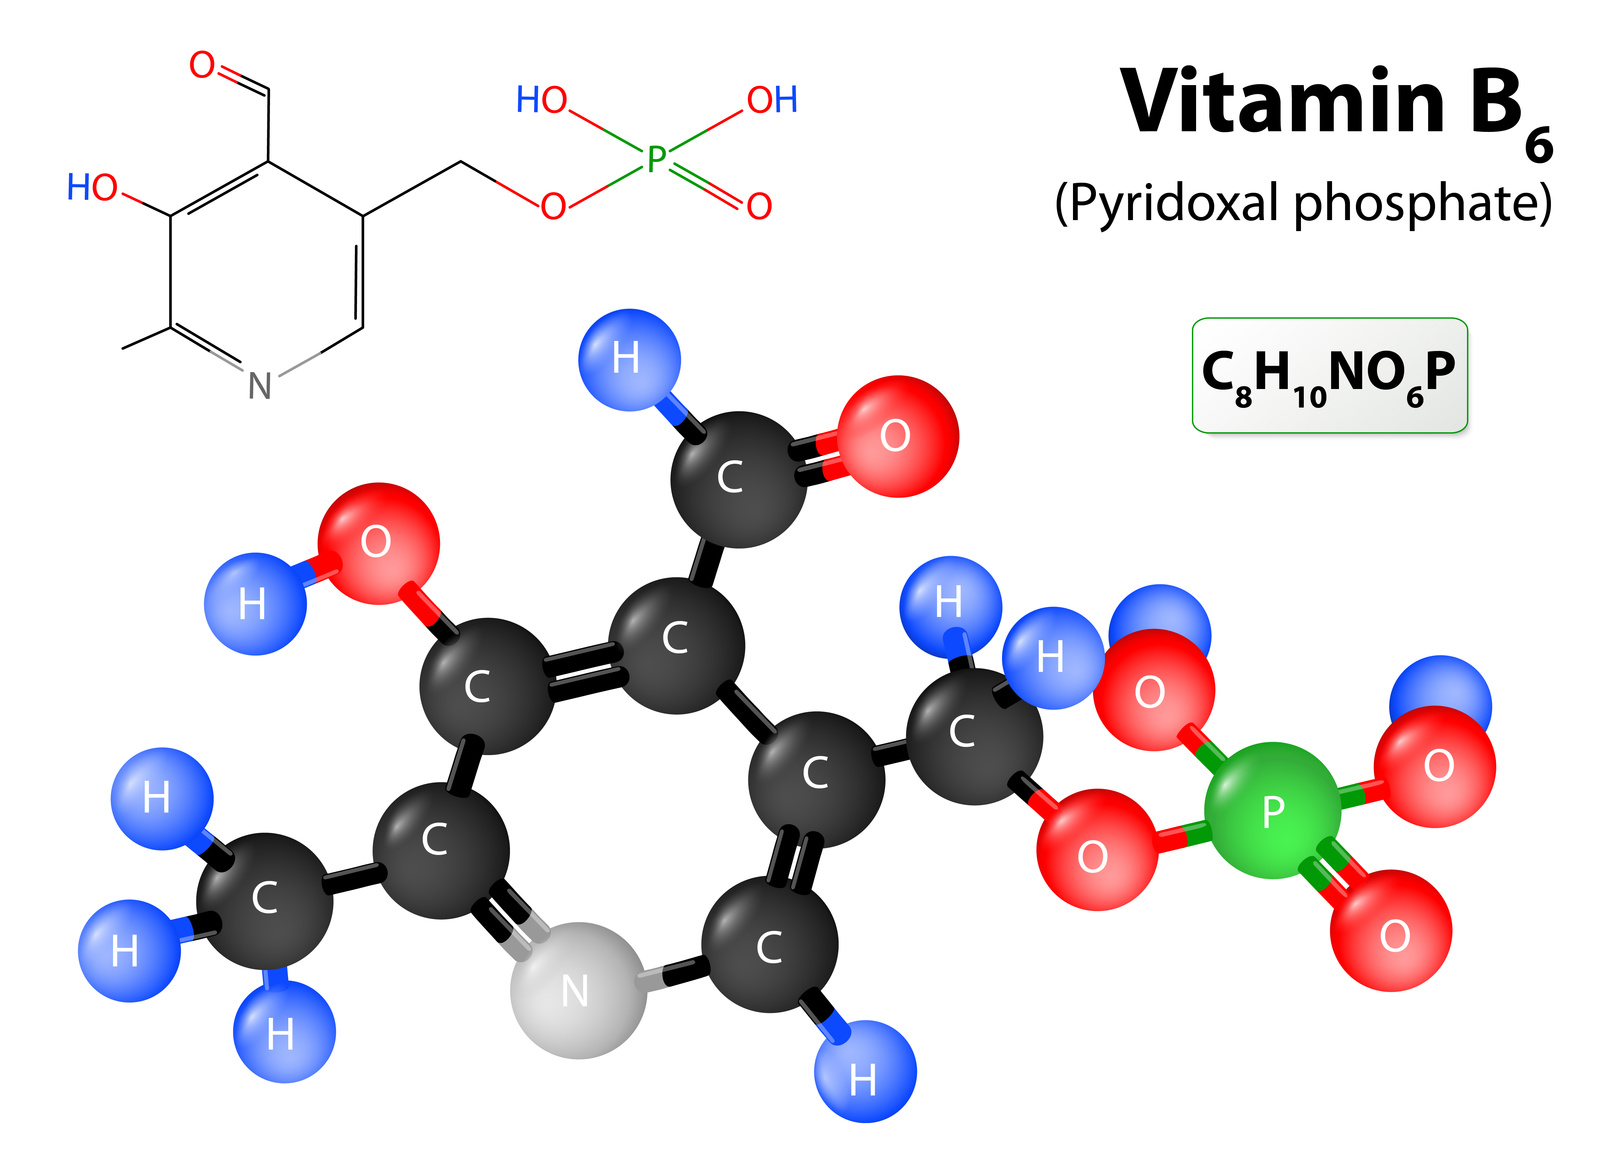 Pyridoxal phosphate the active form of vitamin B6. model of vitamin B6 molecule. Pyridoxal phosphate molecular structure